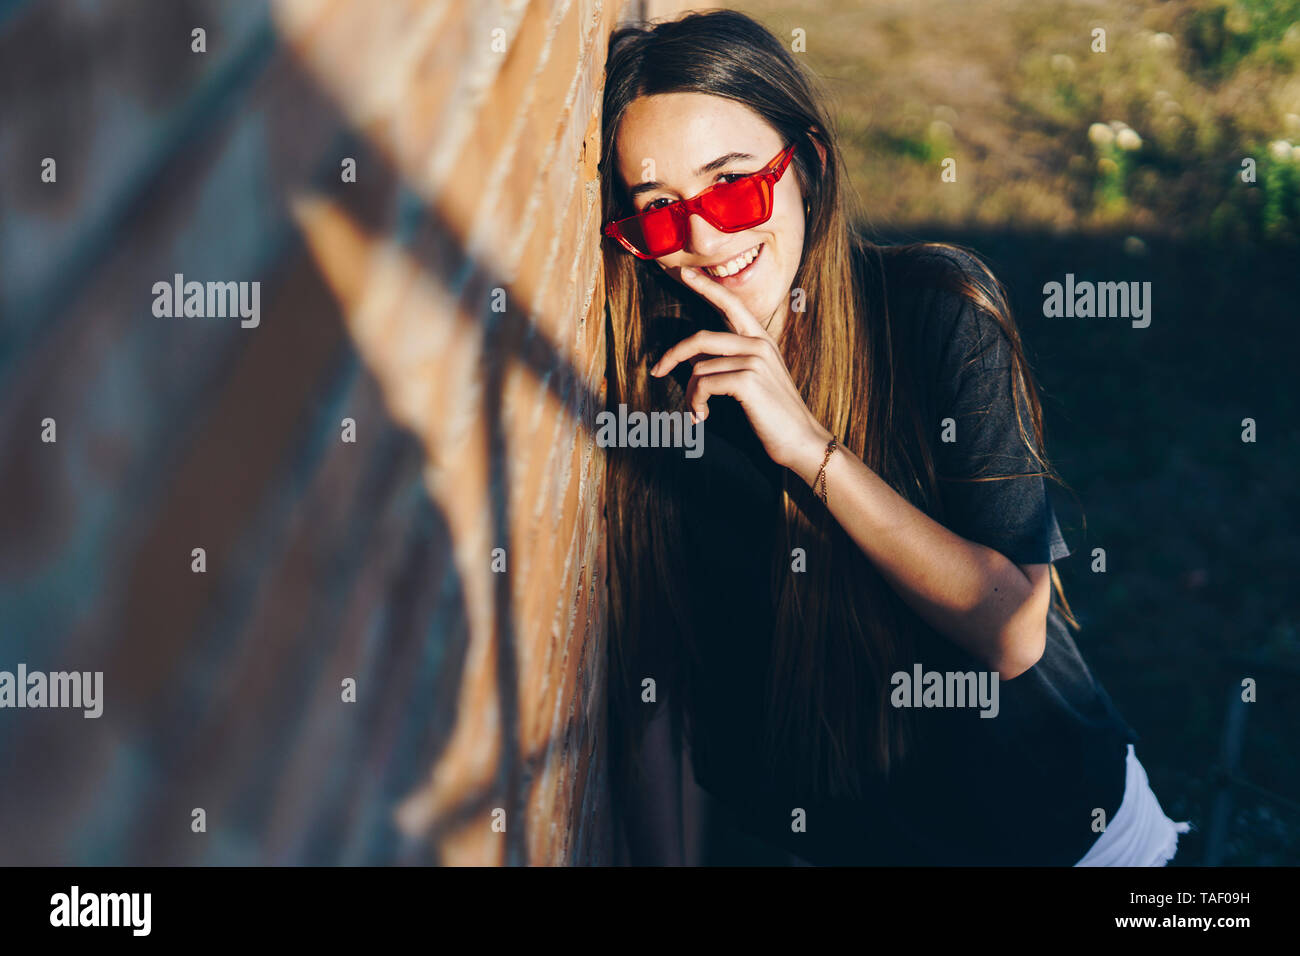 Spain, portrait of a happy teenage girl - Stock Image